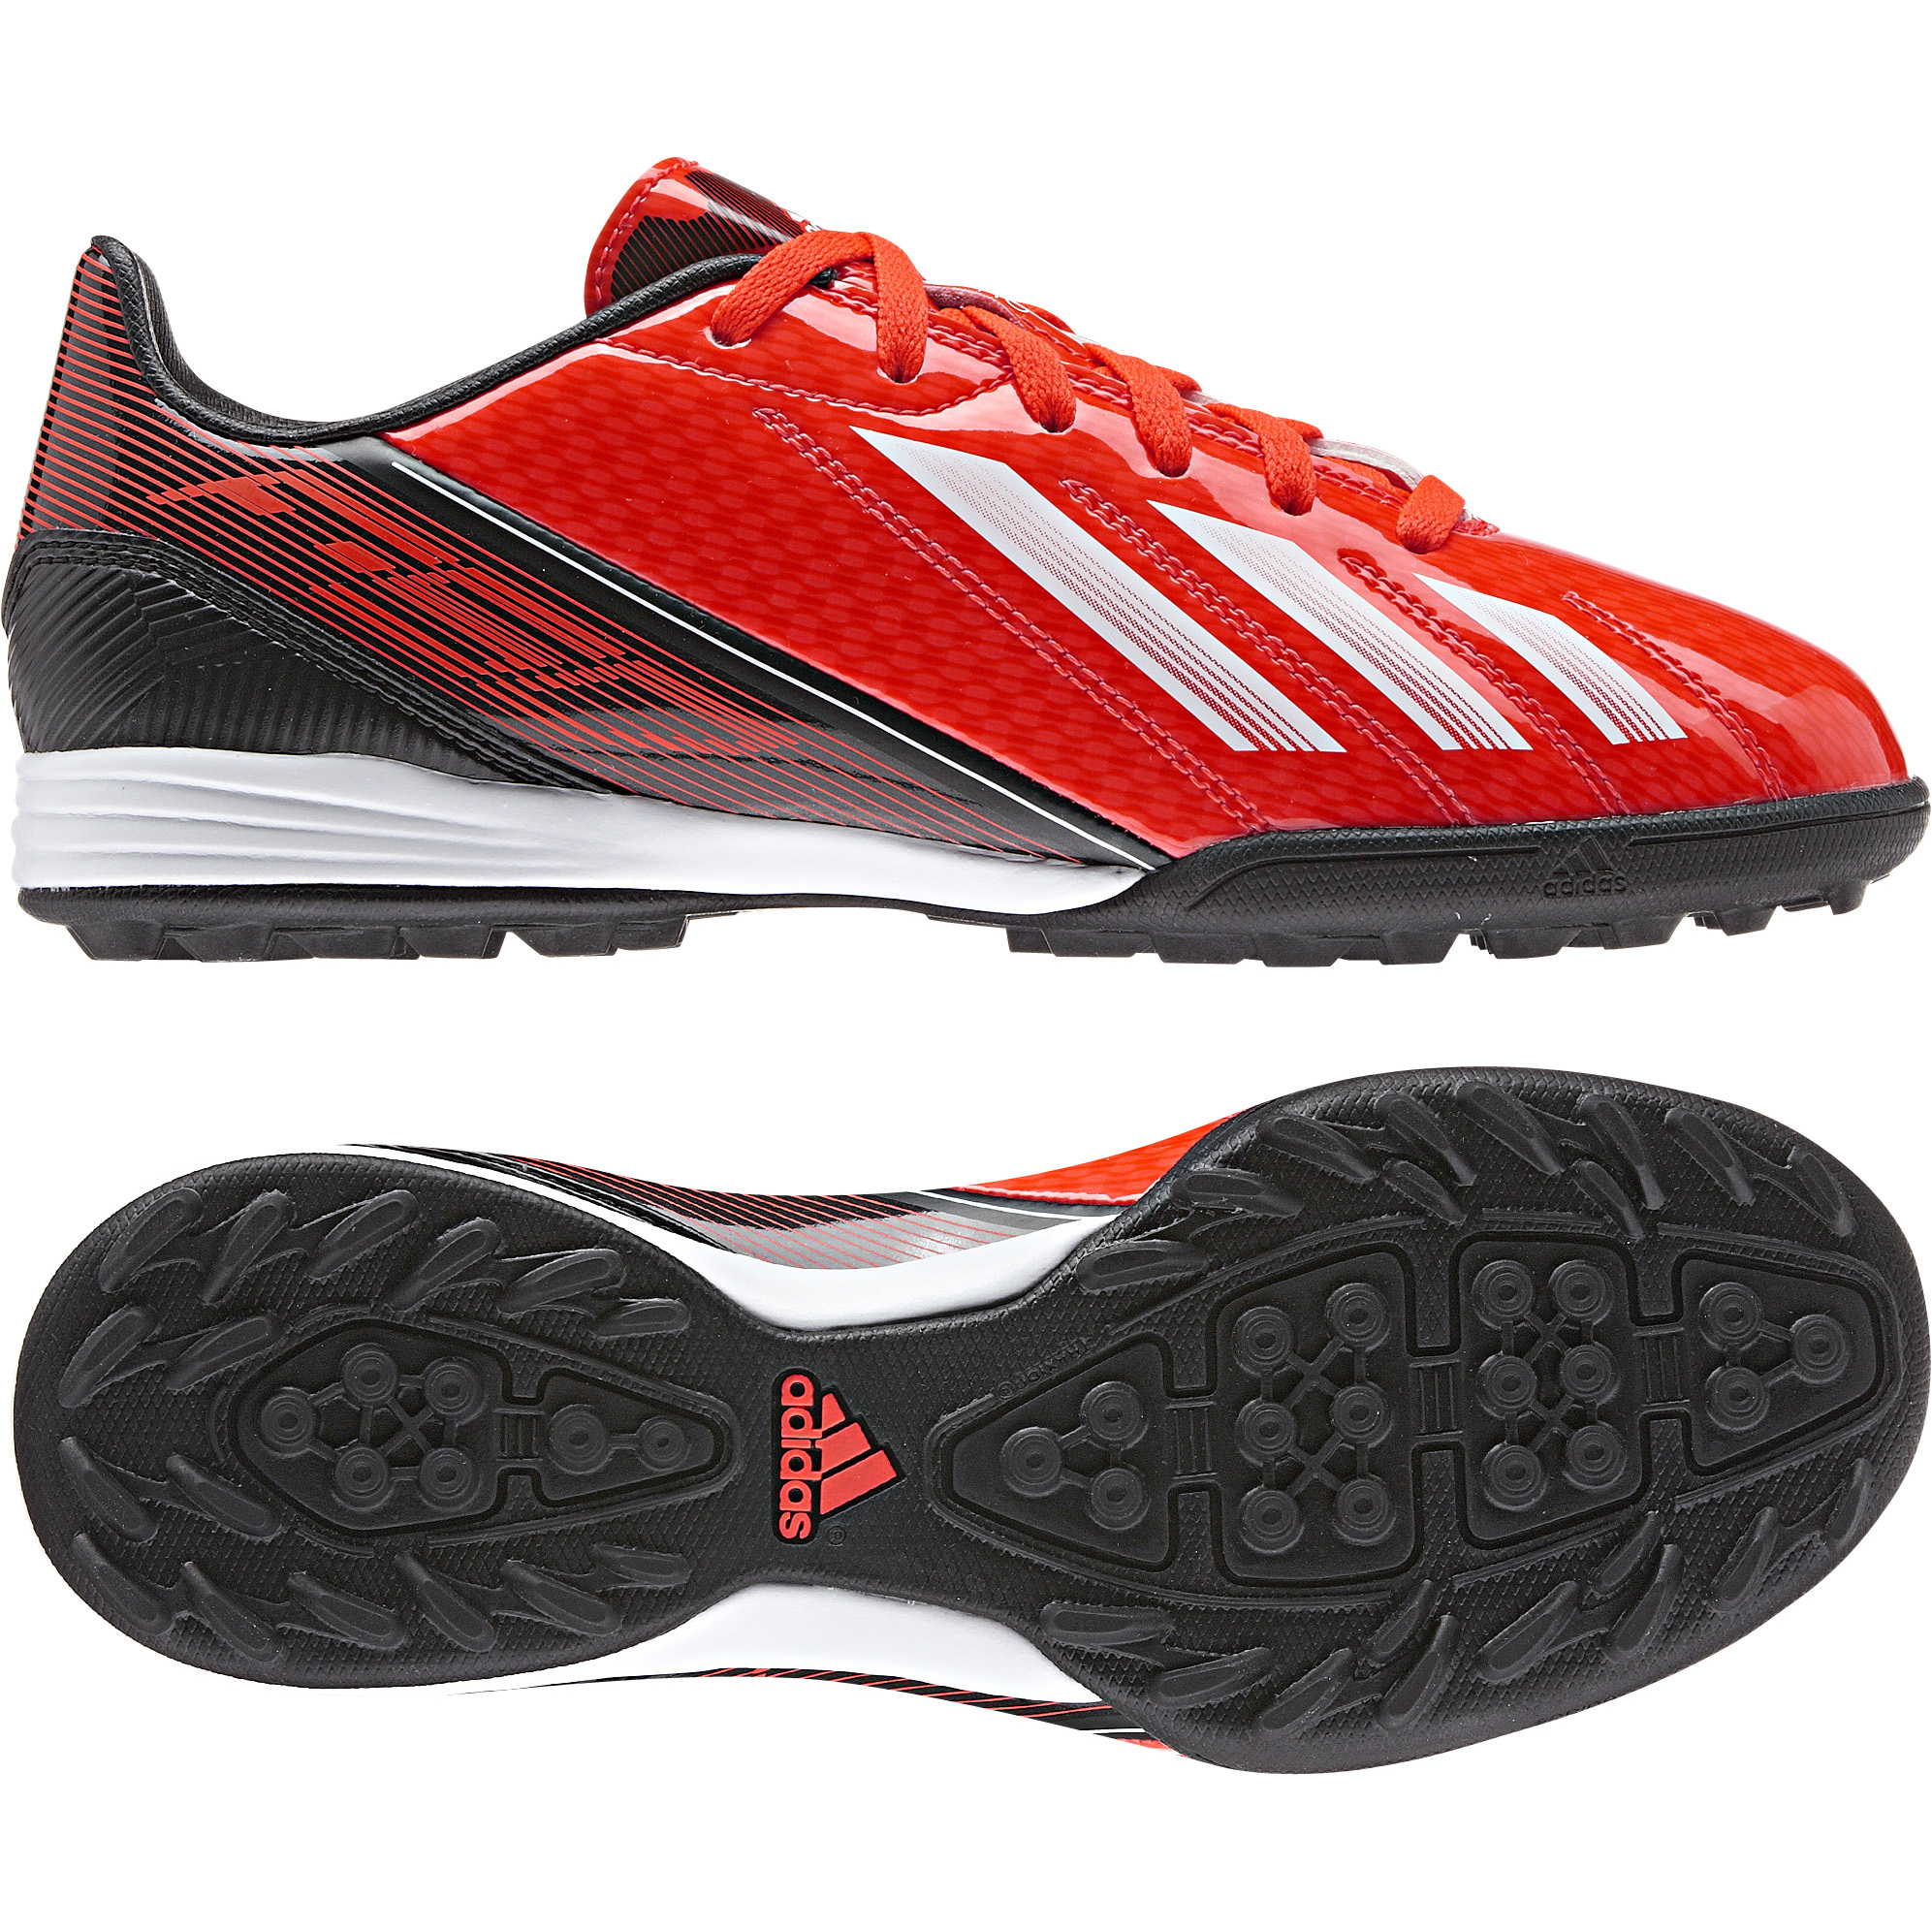 Adidas F10 TRX Astroturf Trainers - Kids Red